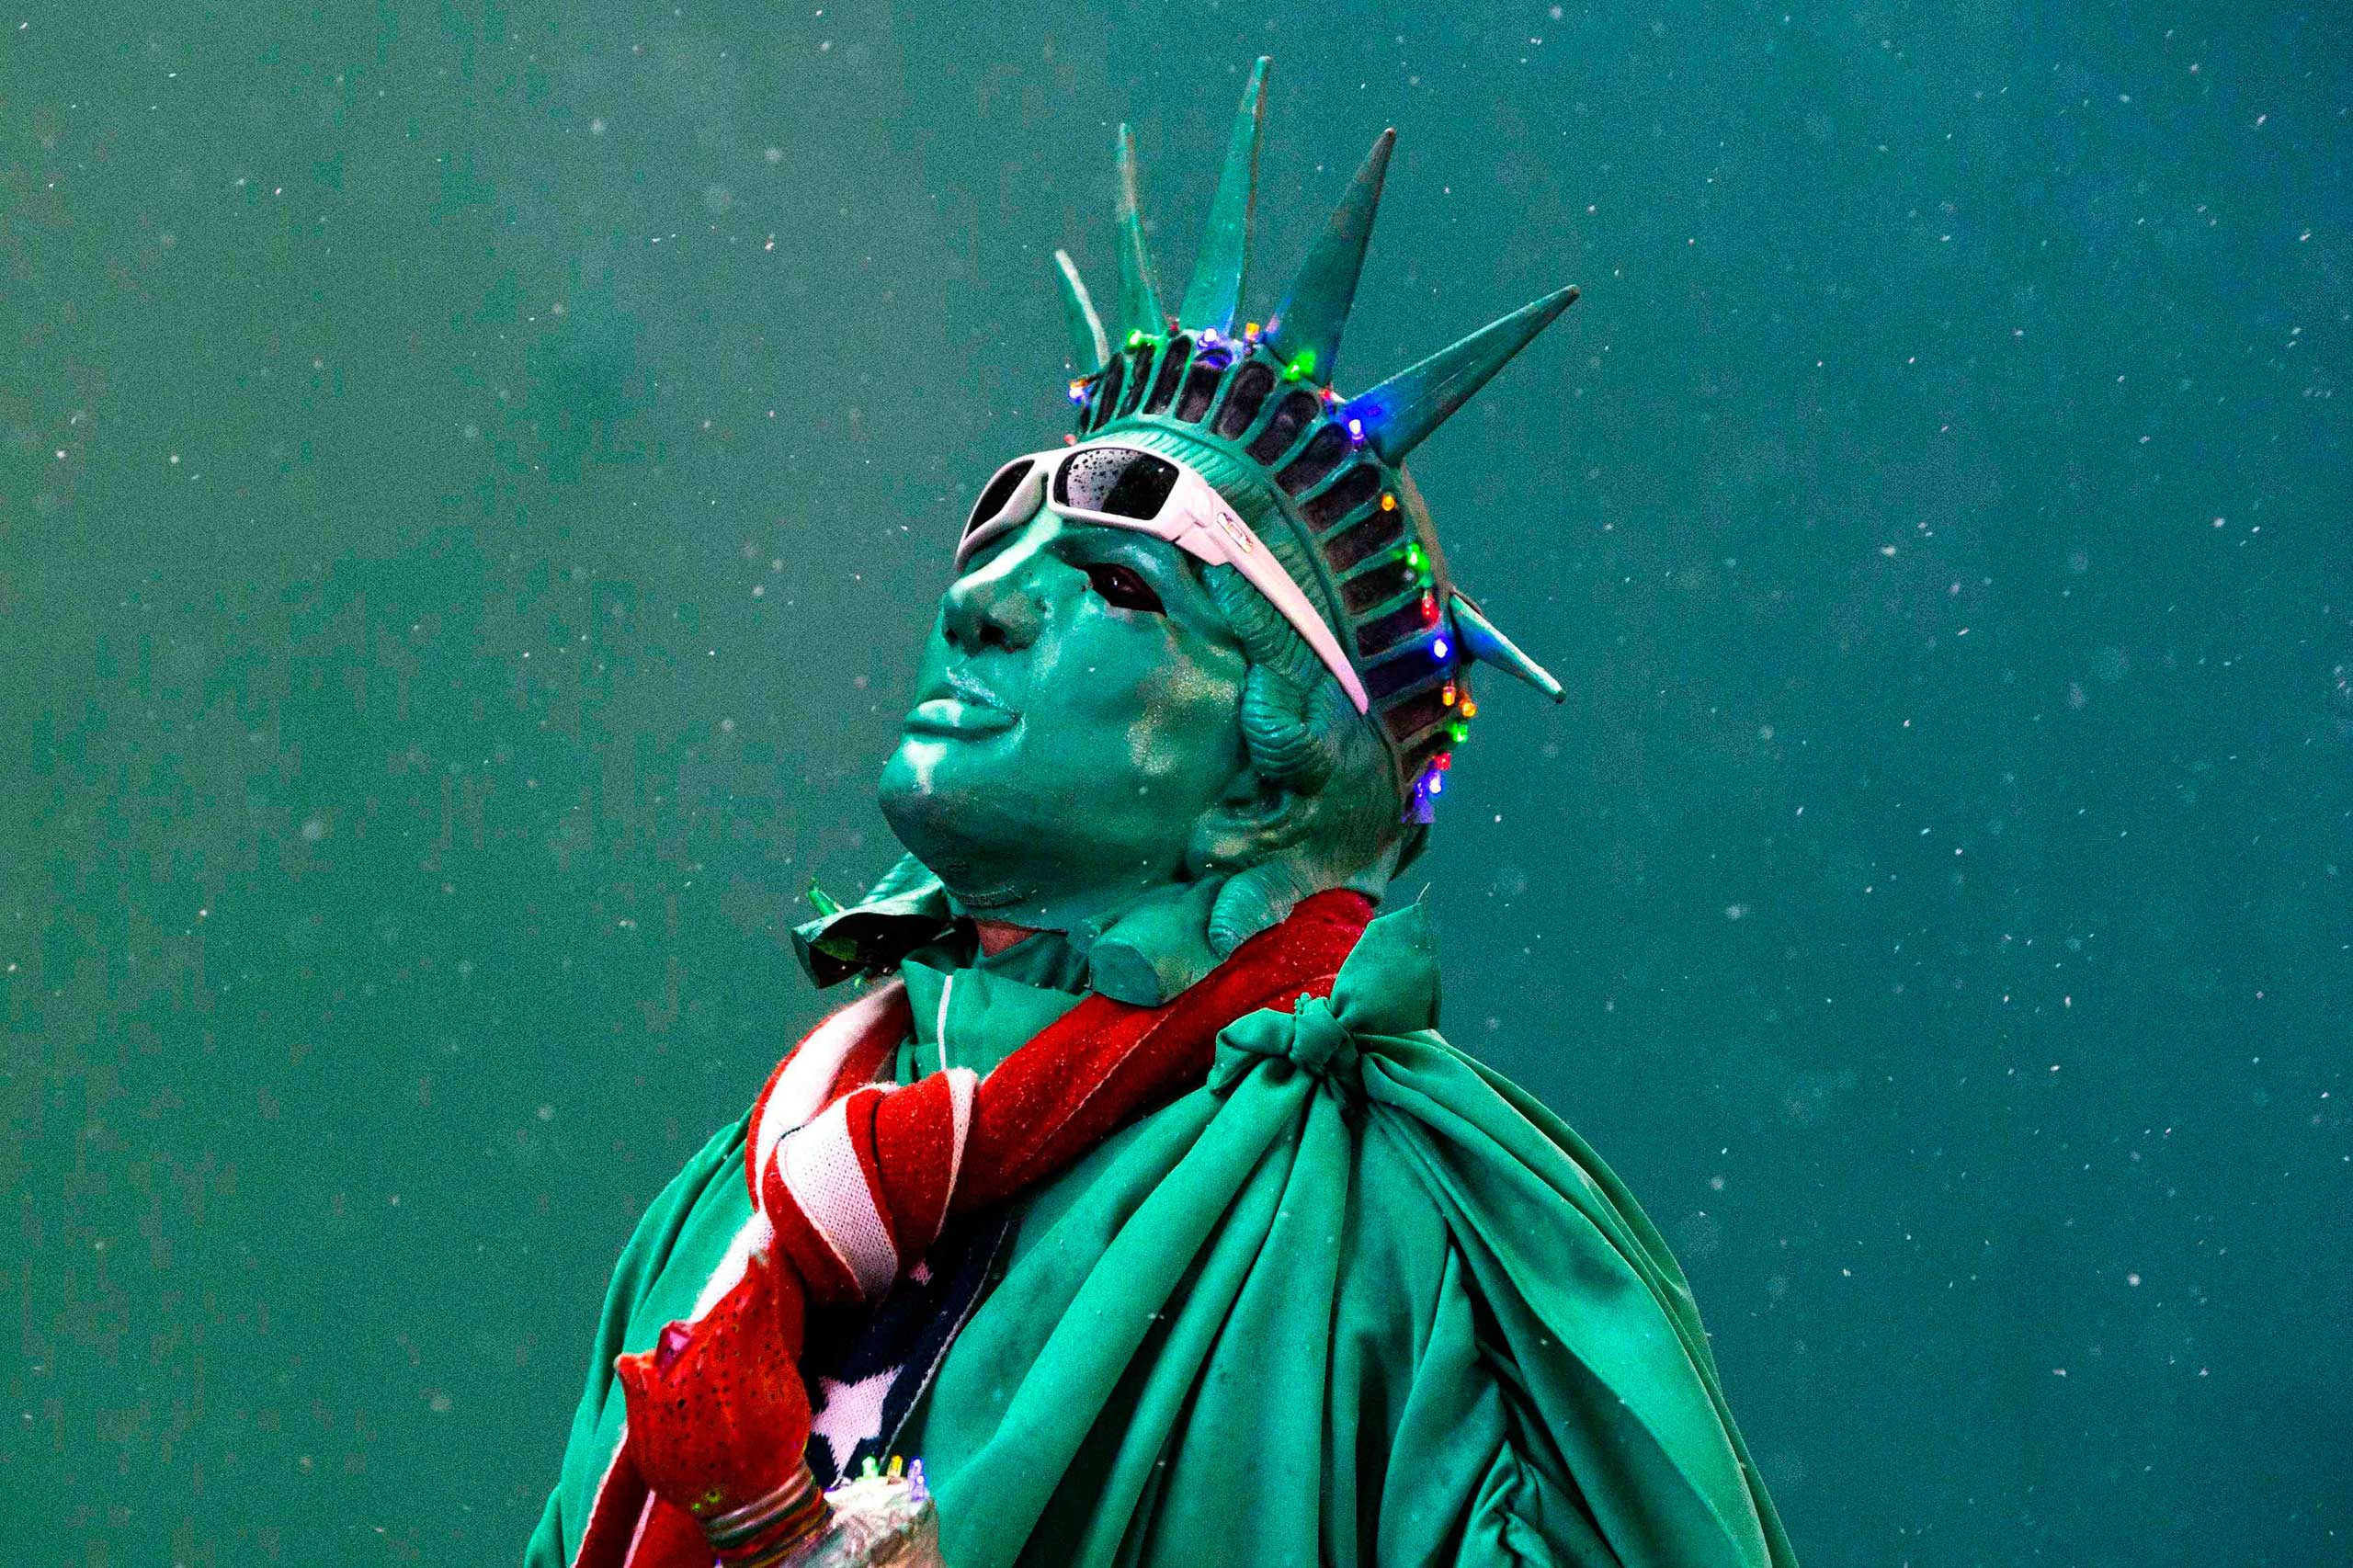 A street performer dressed as the Statue of Liberty stands among light snow in Times Square in New York, Dec. 10, 2014.